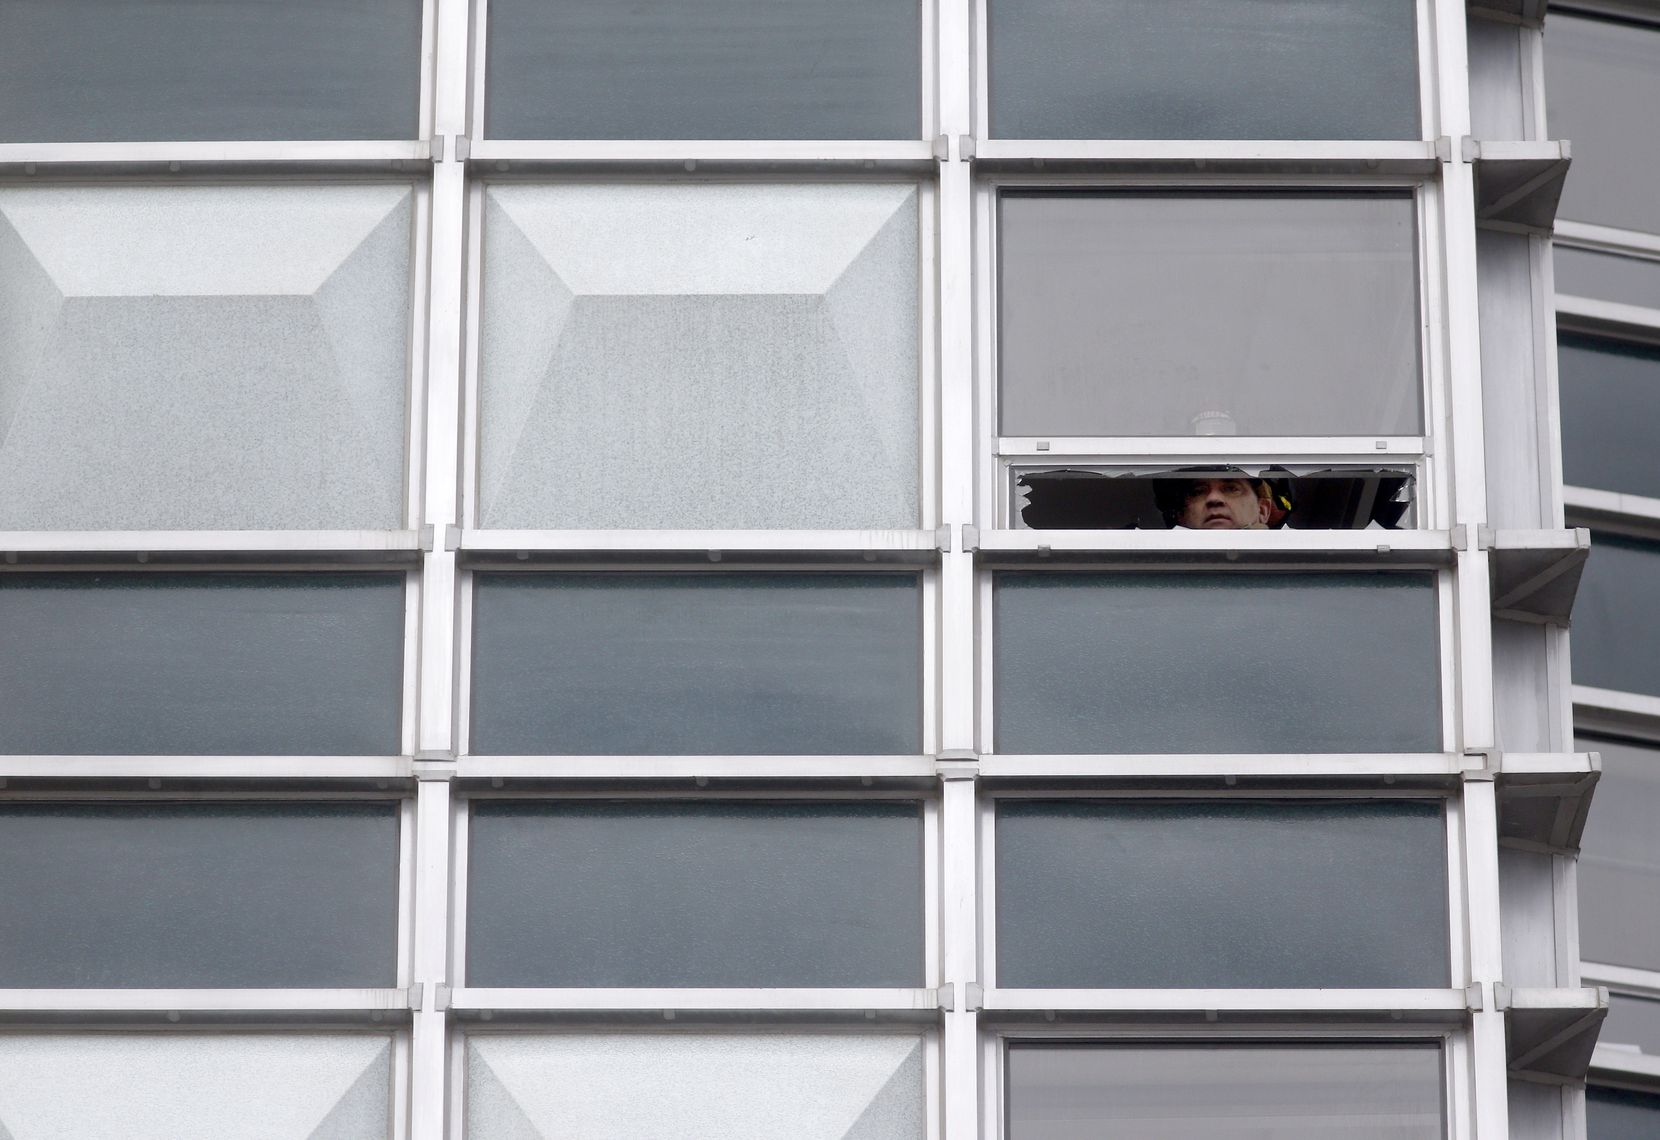 A Dallas Fire-Rescue captain is seen through a broken window on the 16th floor of the Statler Dallas residences, that DFR smashed to ventilate the room.